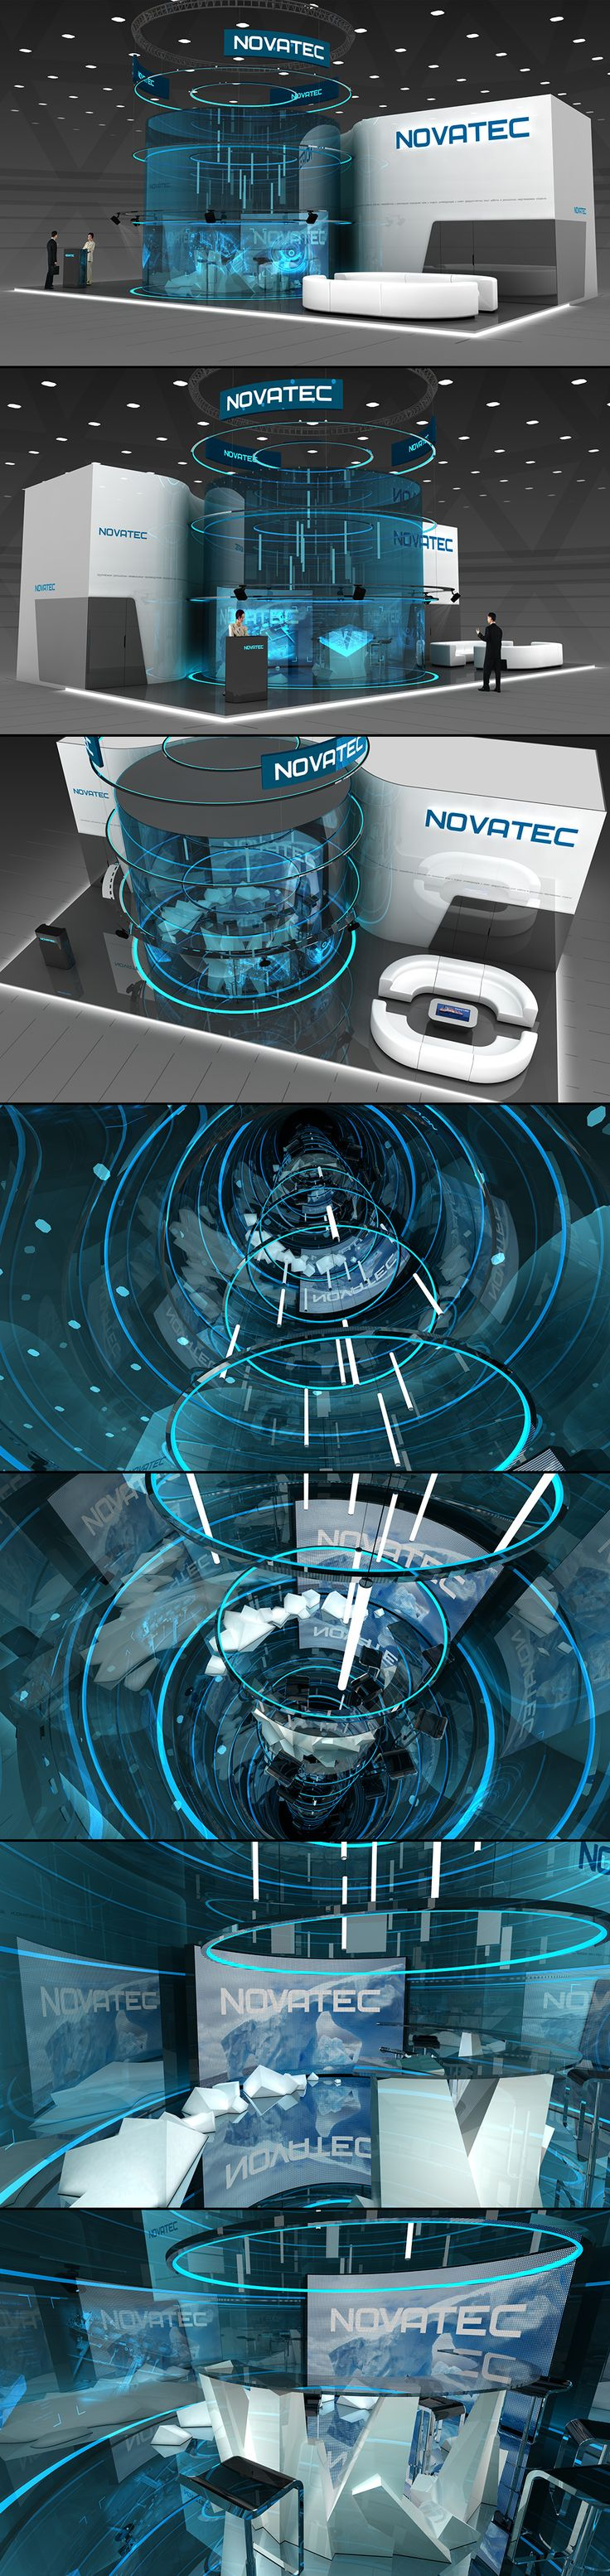 Novatec exhibition stand on Behance